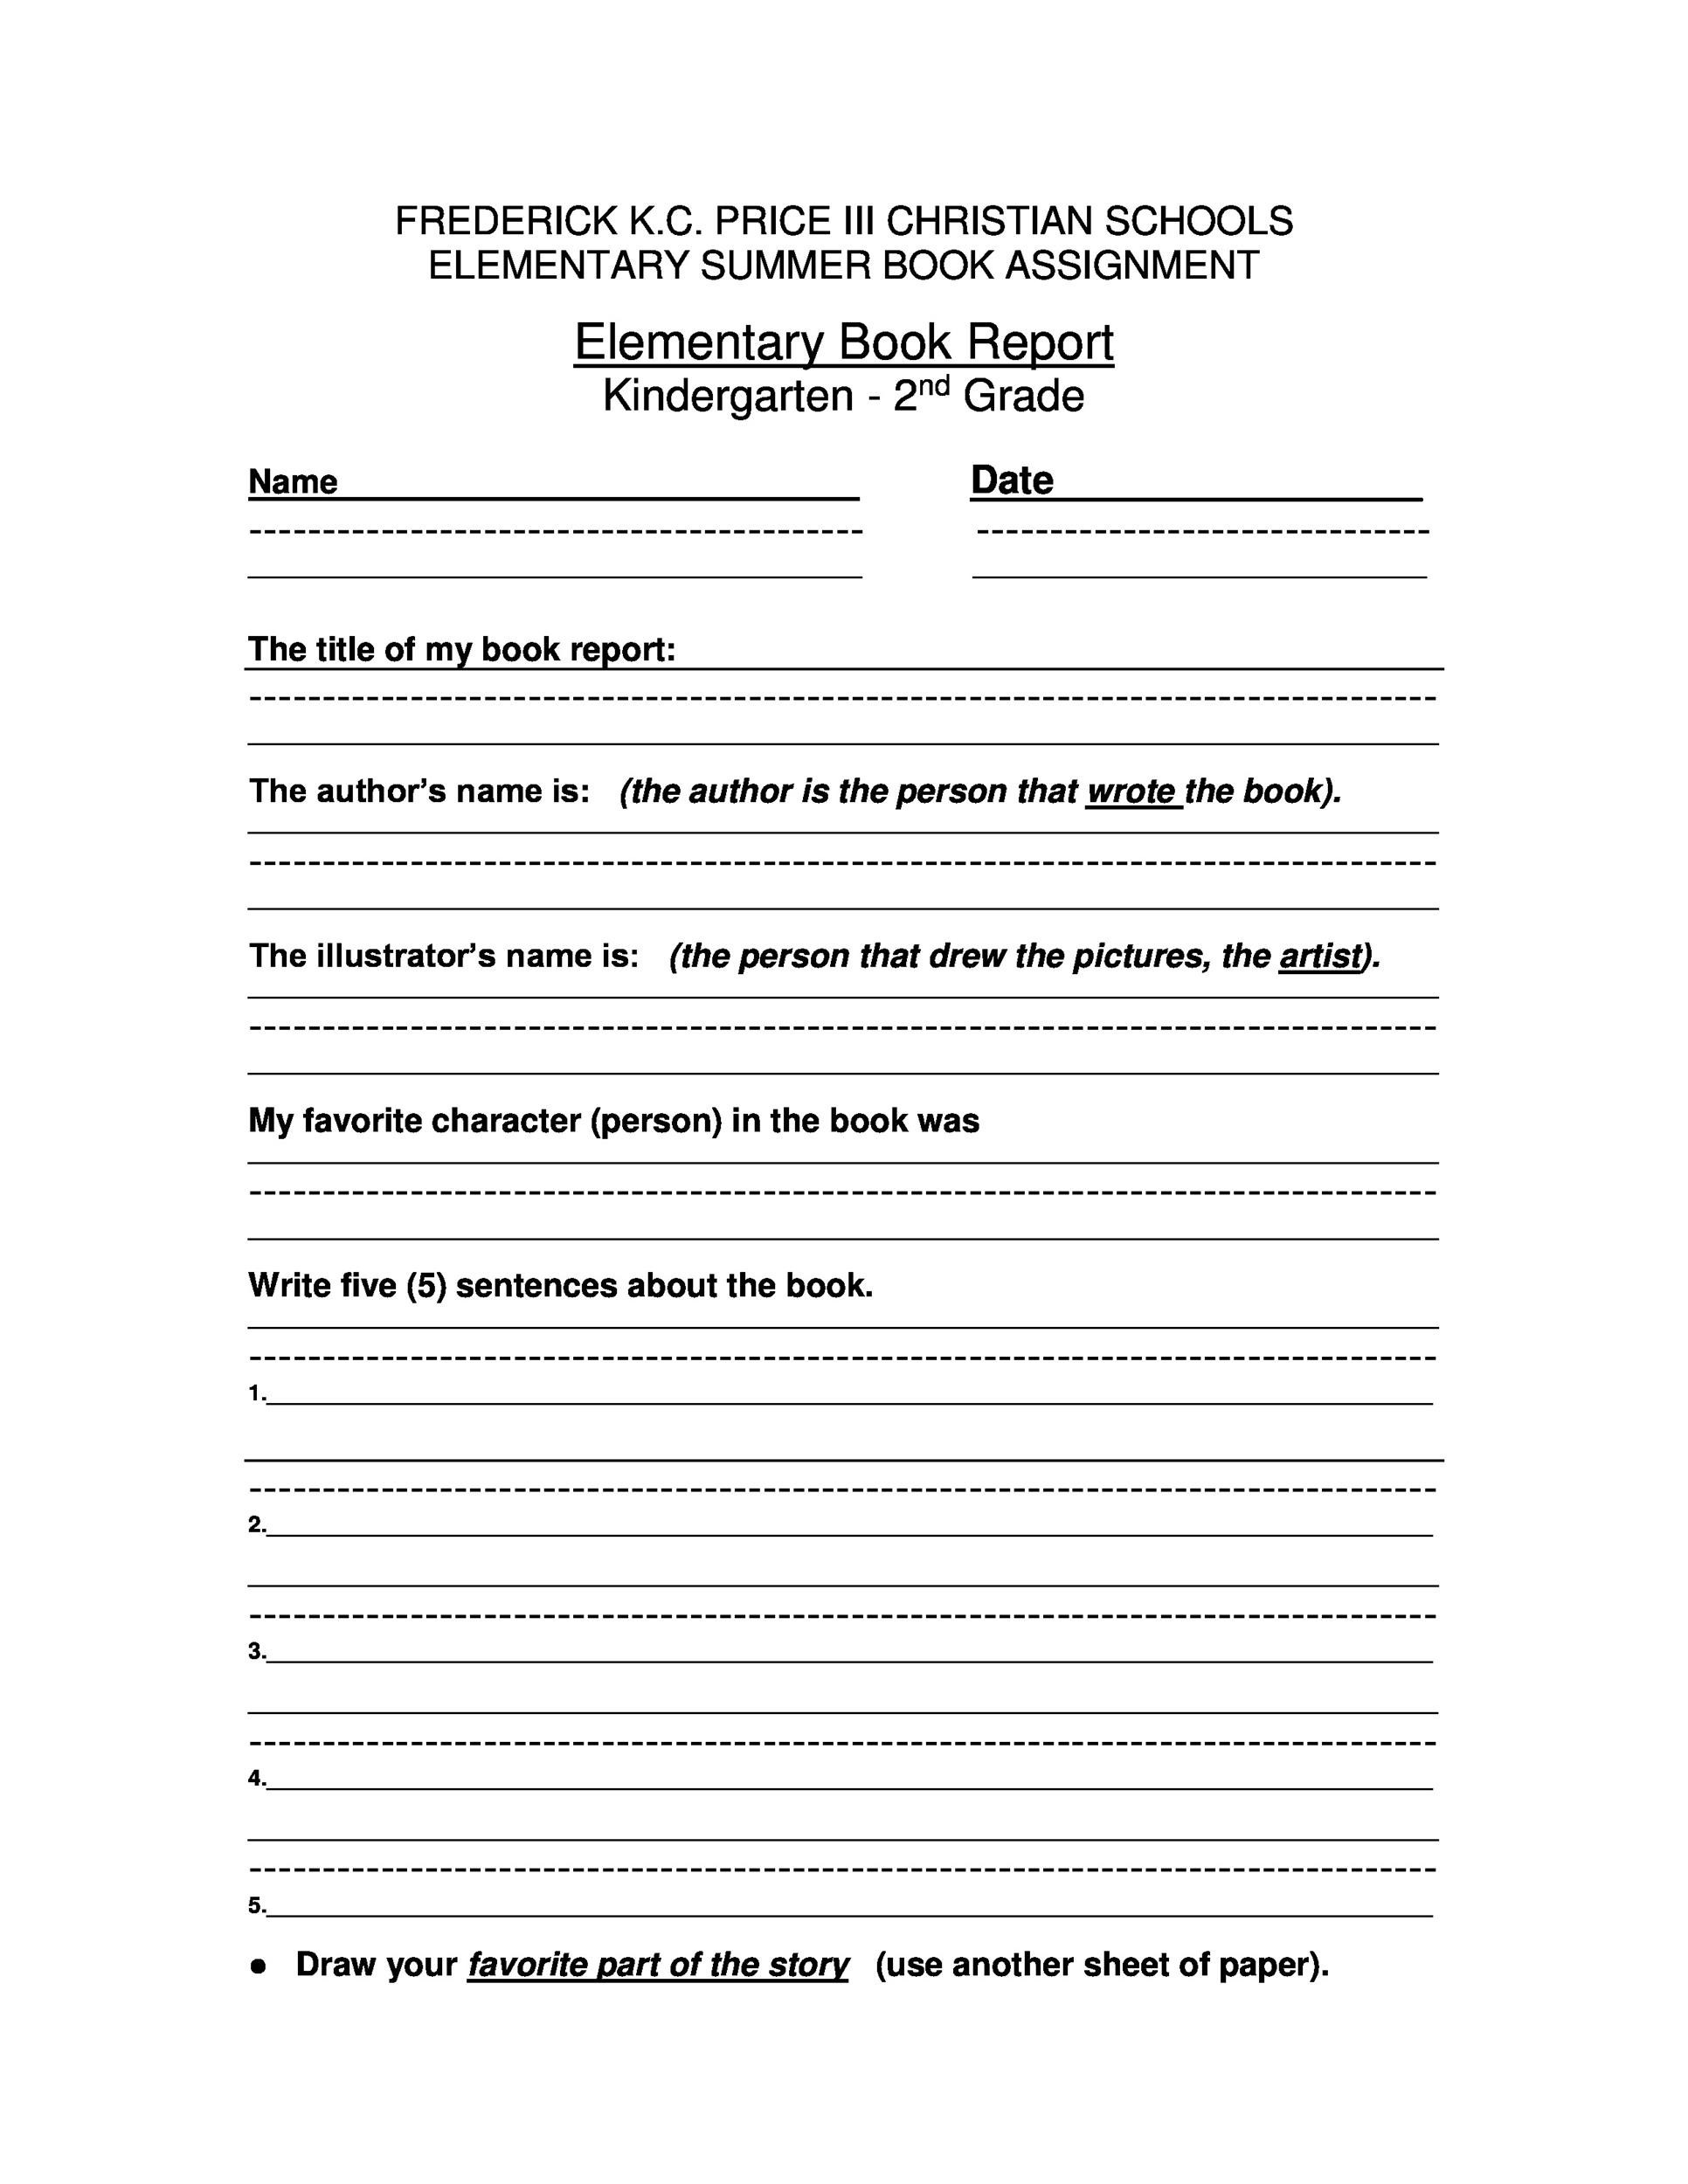 Samples of book report forms